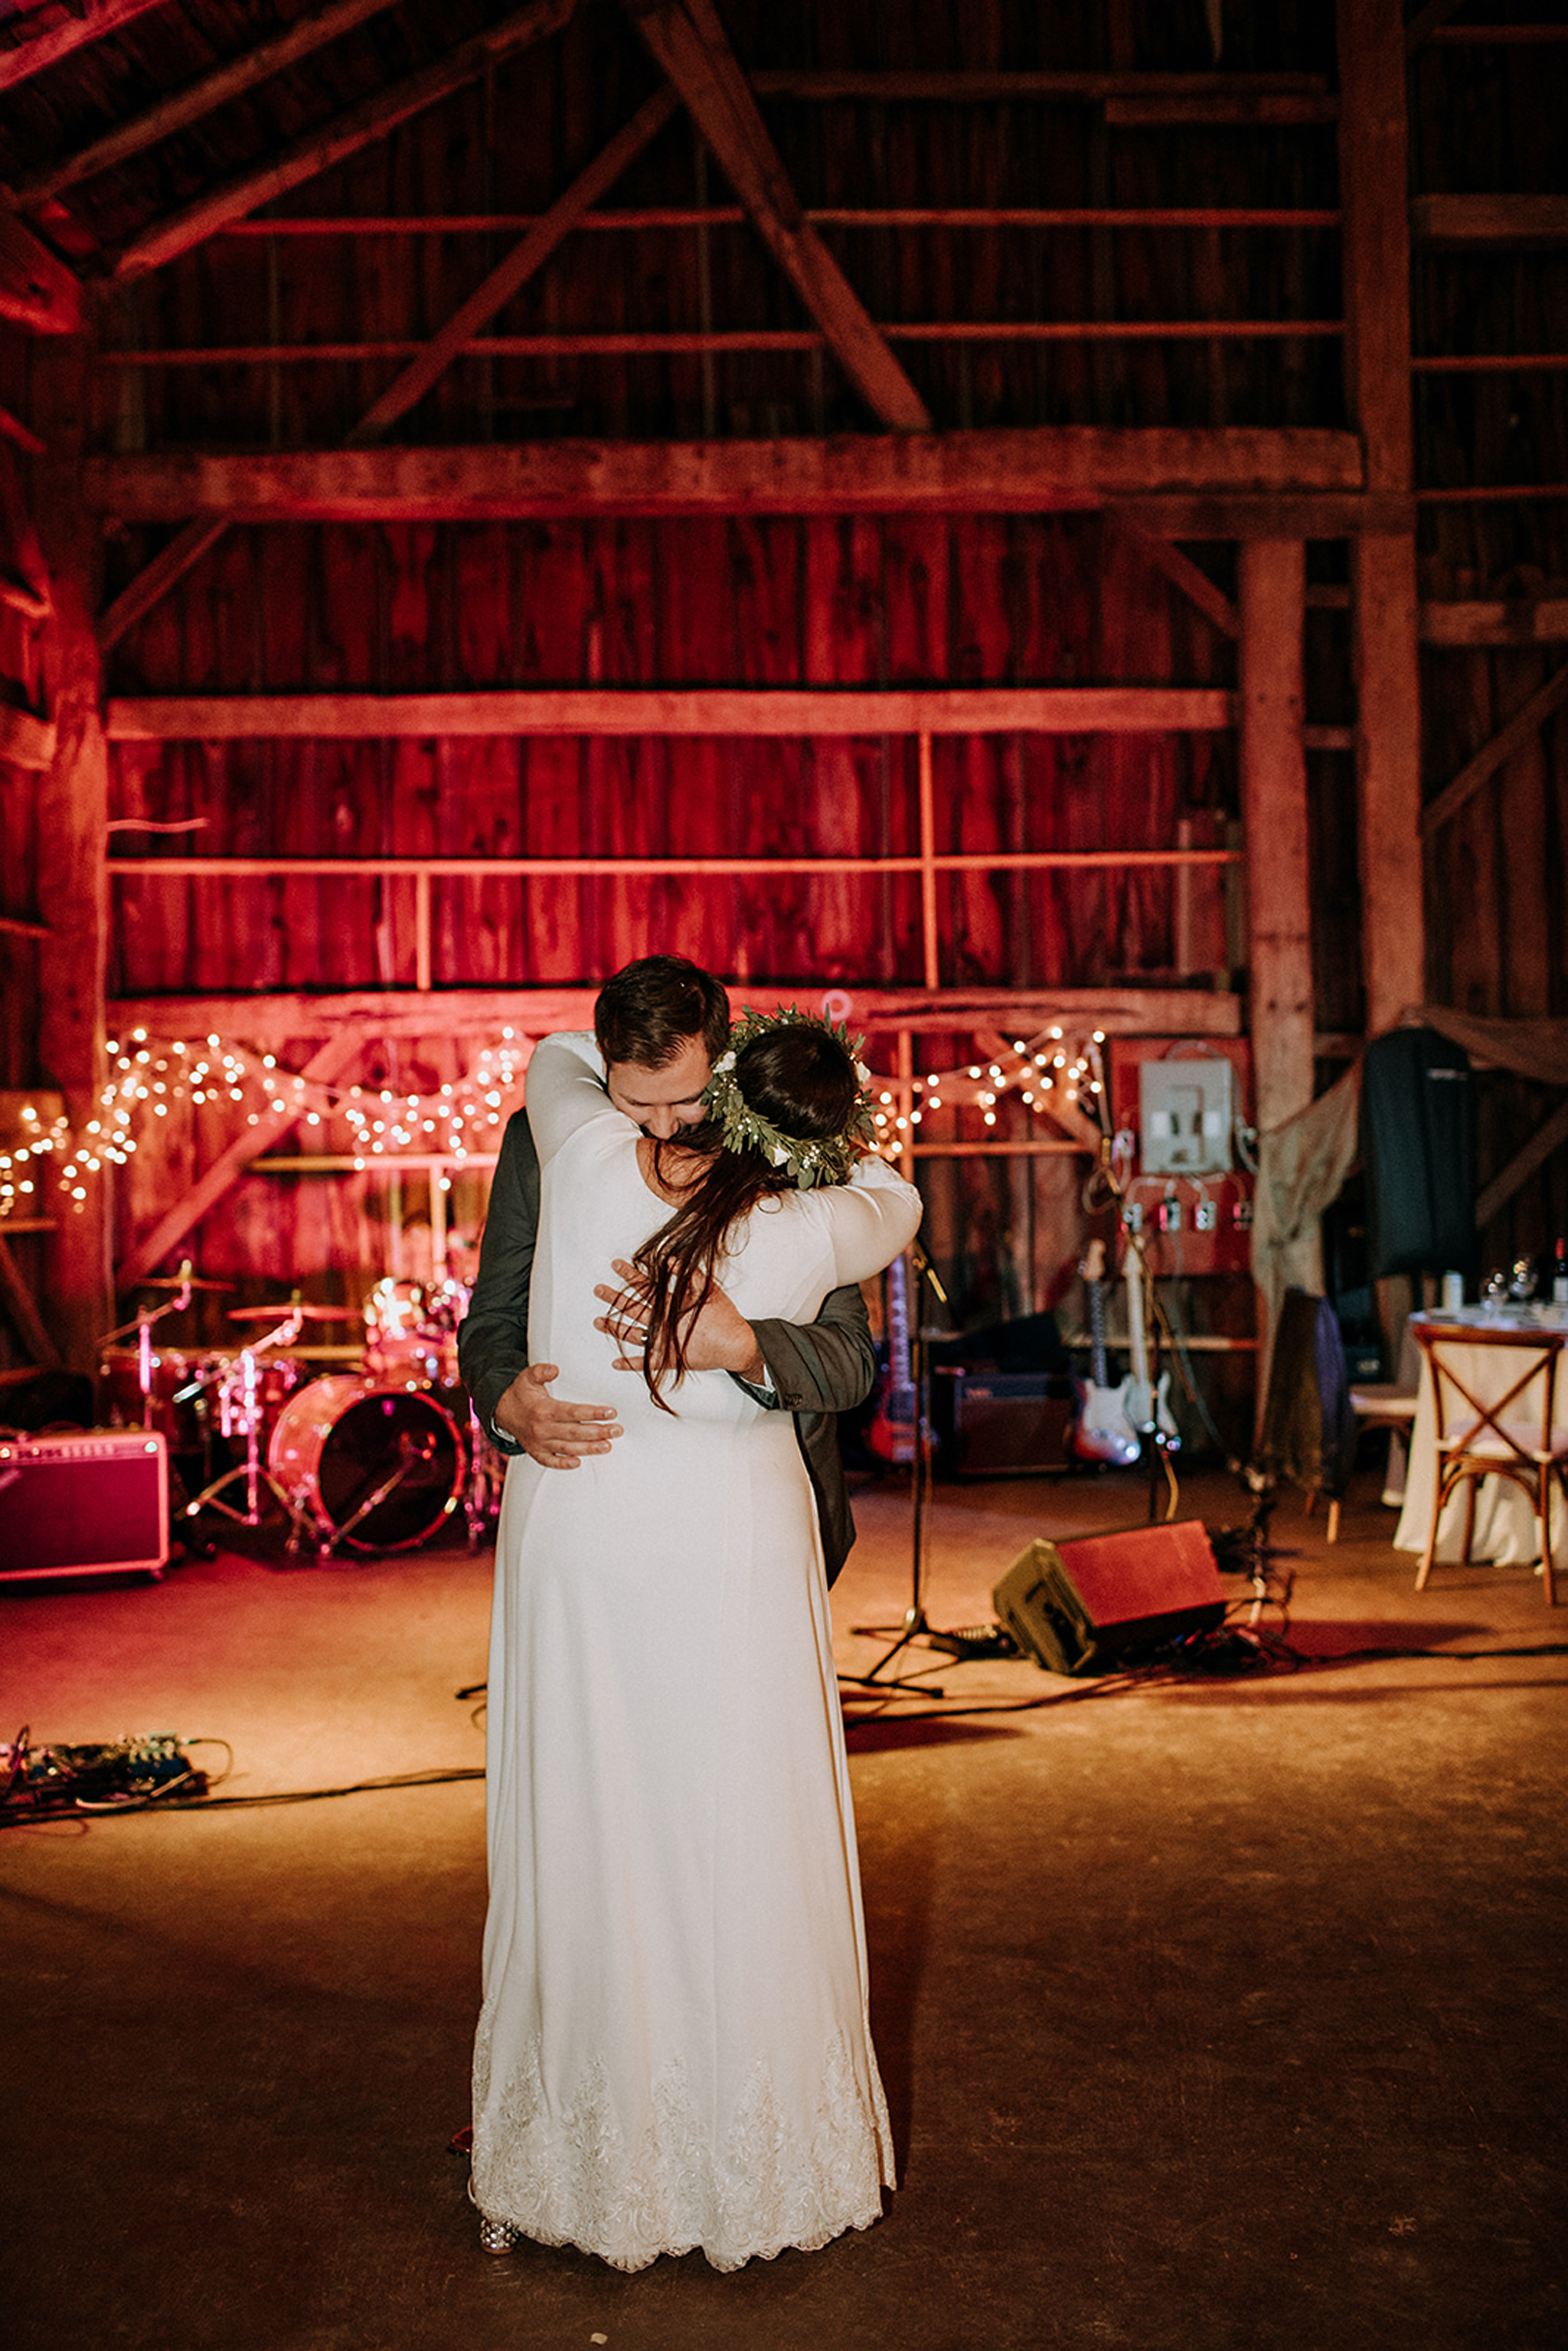 first dance at meaford barn wedding with twinkly lights